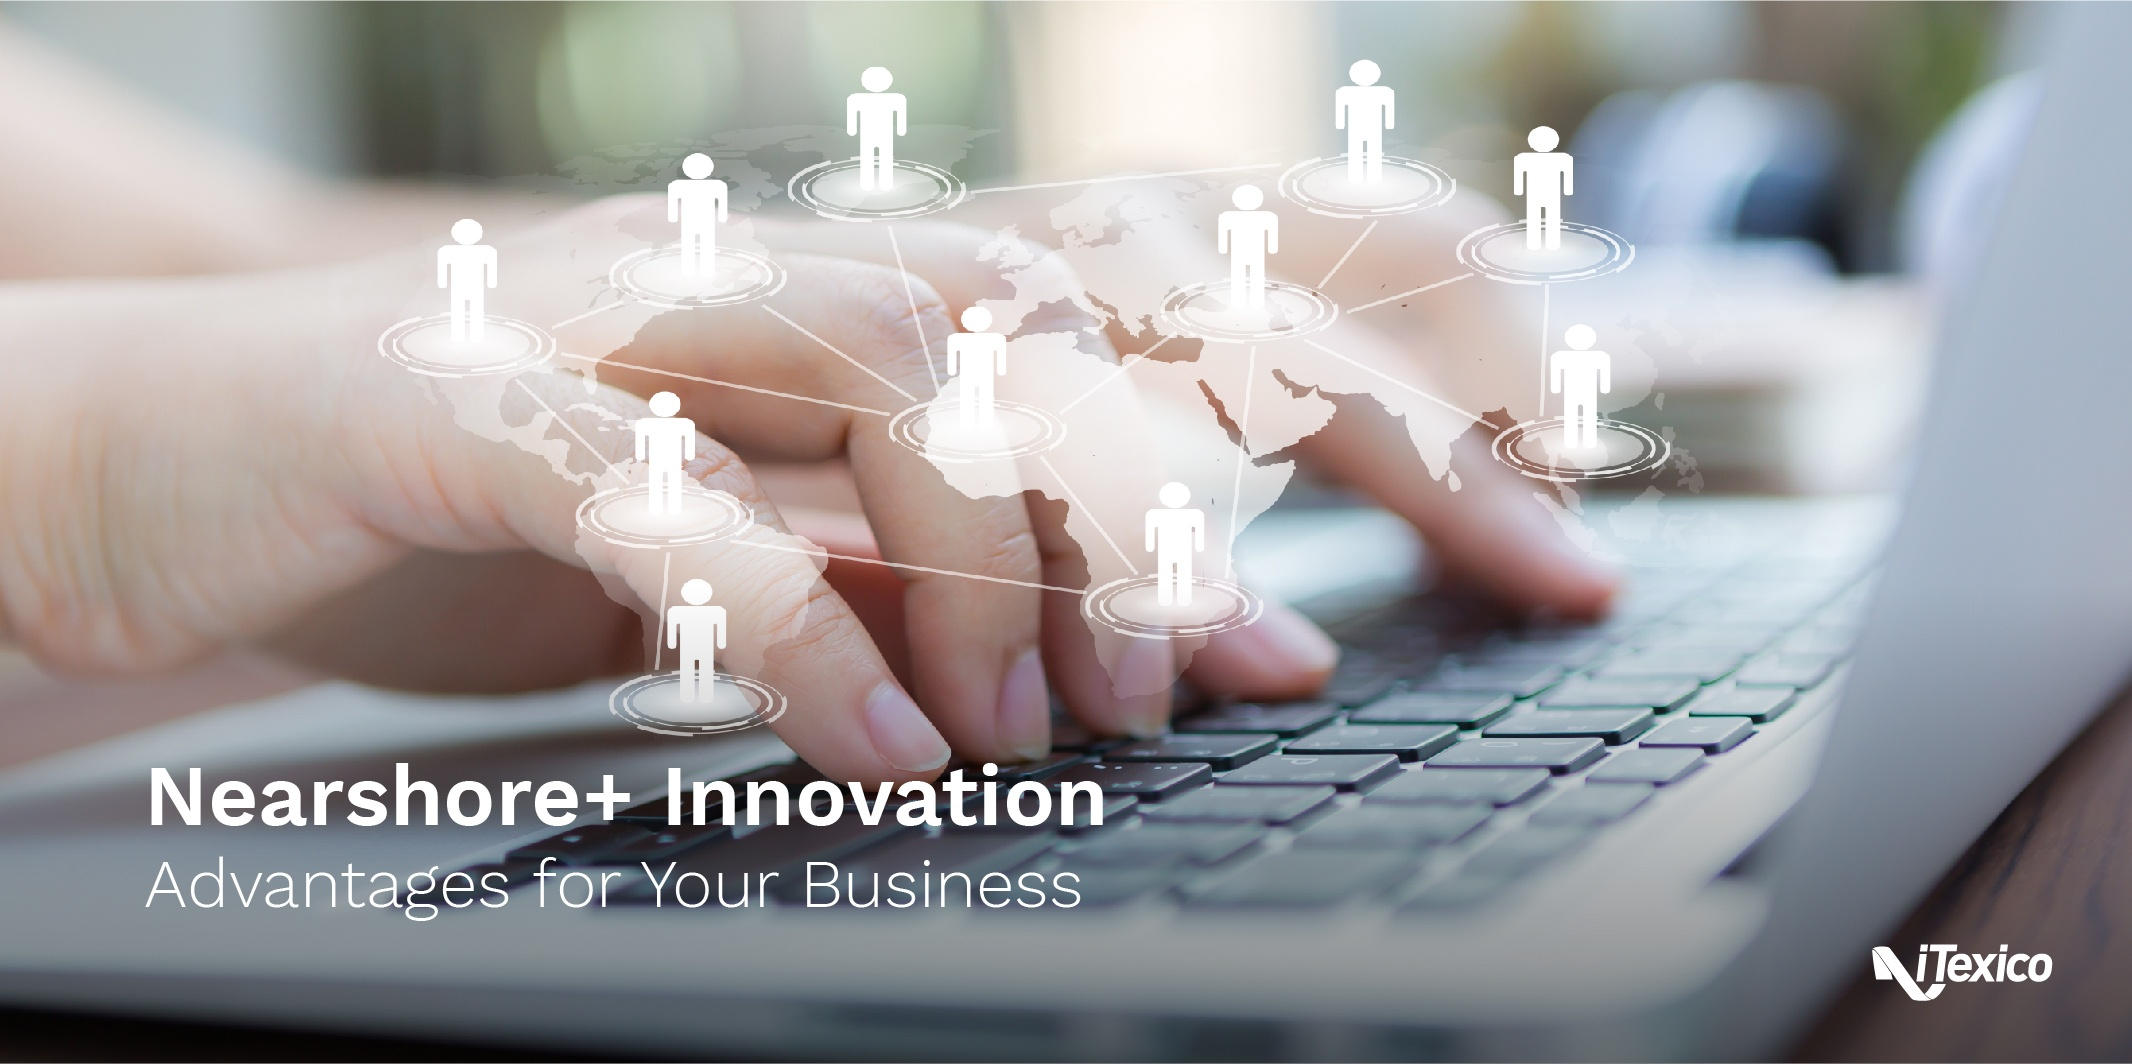 Nearshore+ Innovation Advantages for Your Business